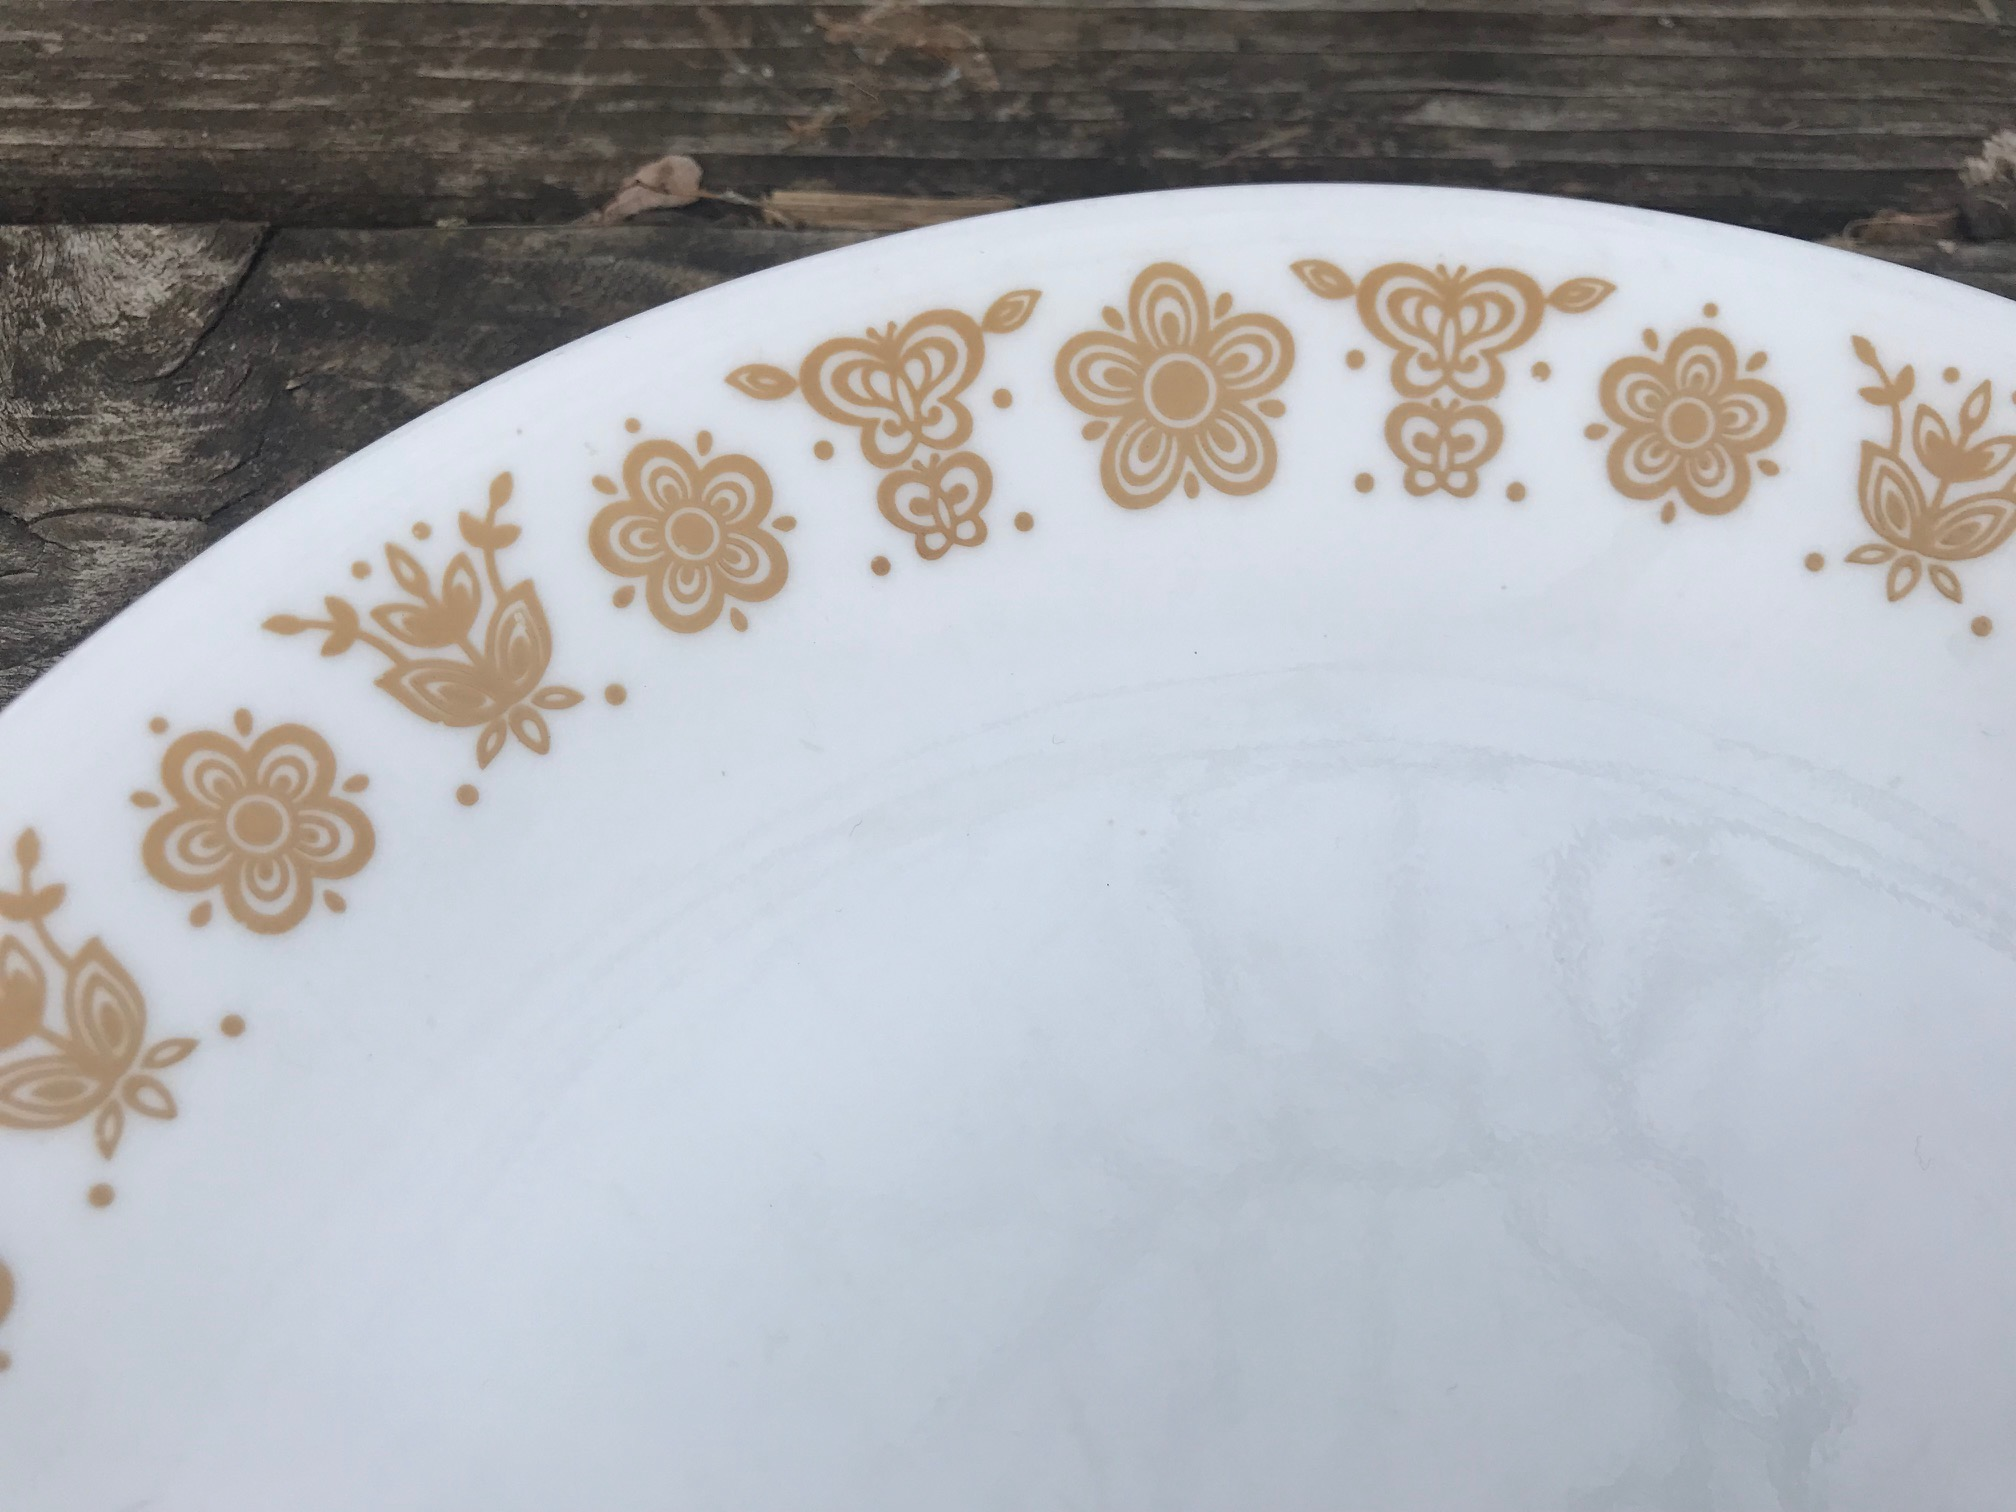 Corelle Butterfly Gold Vintage Glass Plate: 18,700 ppm Lead on the decorative pattern when tested with an XRF.